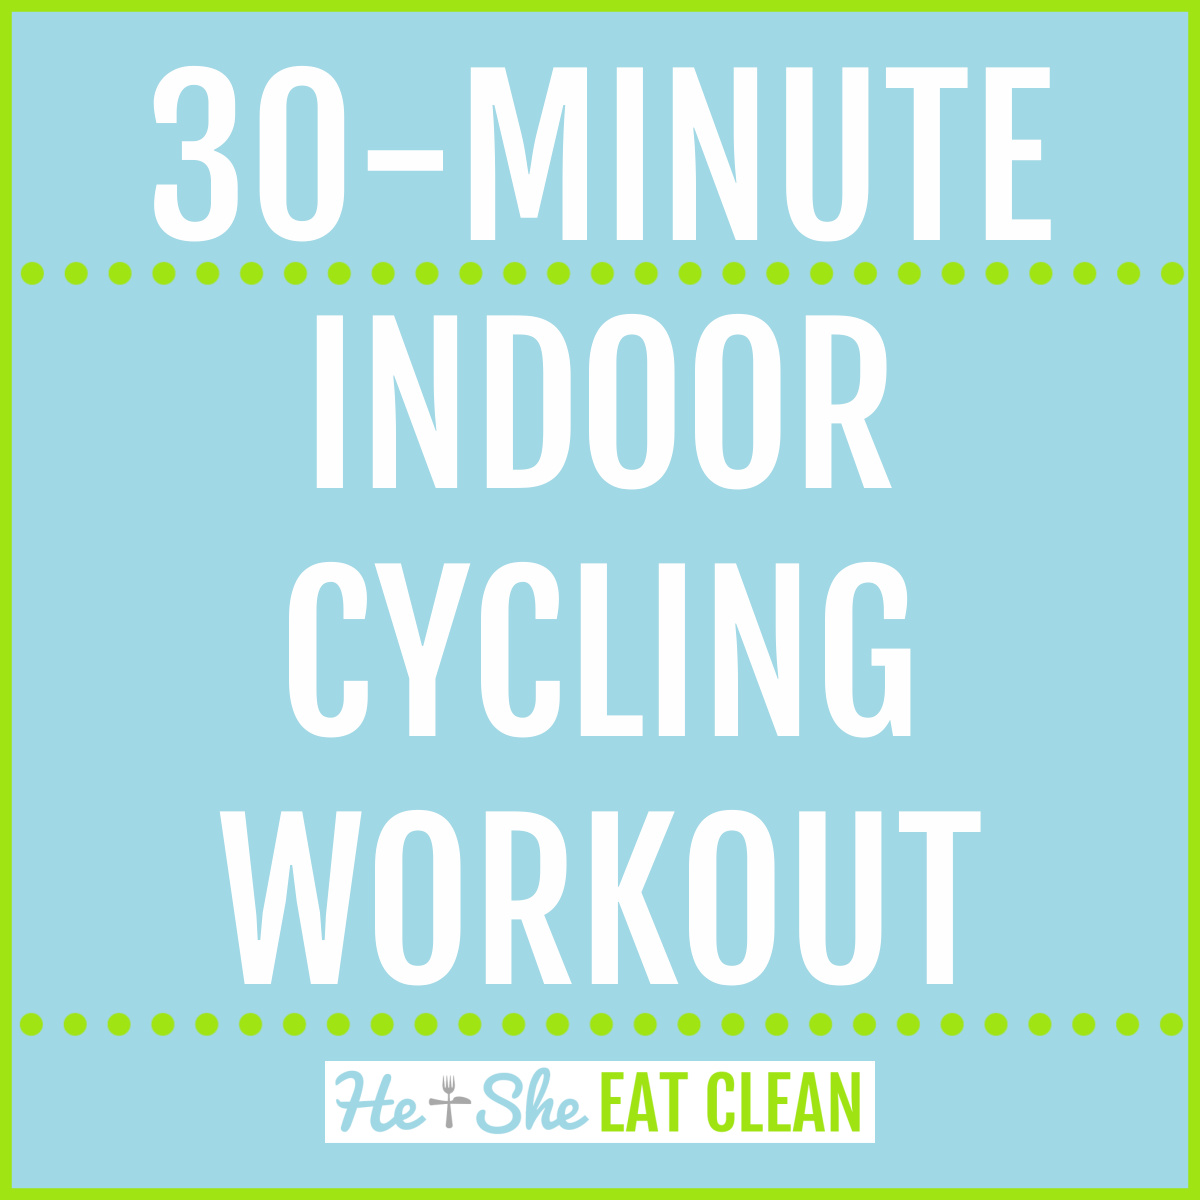 text reads 30-minute indoor cycling workout